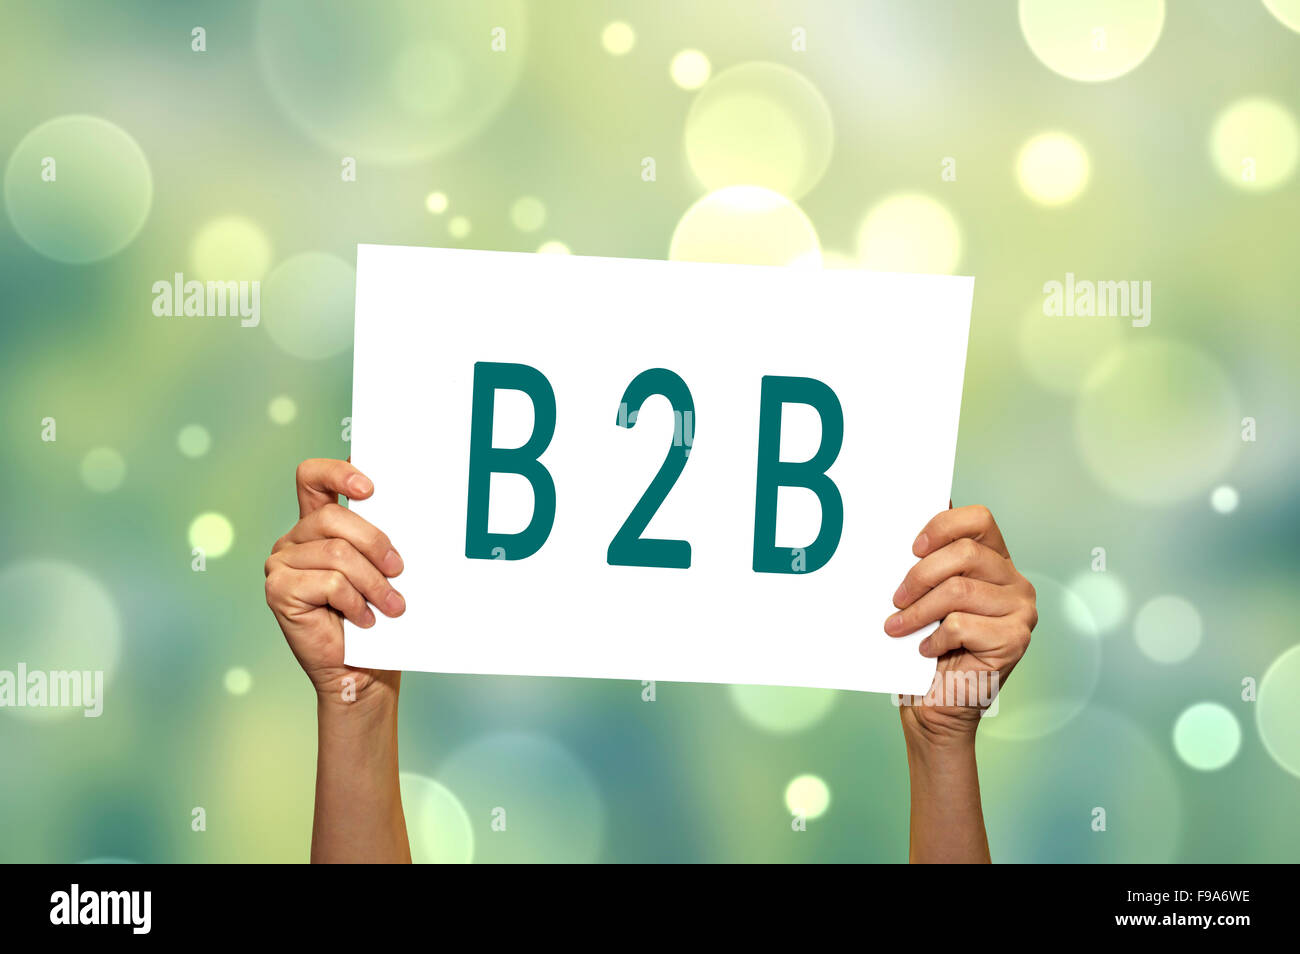 B2B (marketing) card in hand with abstract light background. Selective focus. Stock Photo